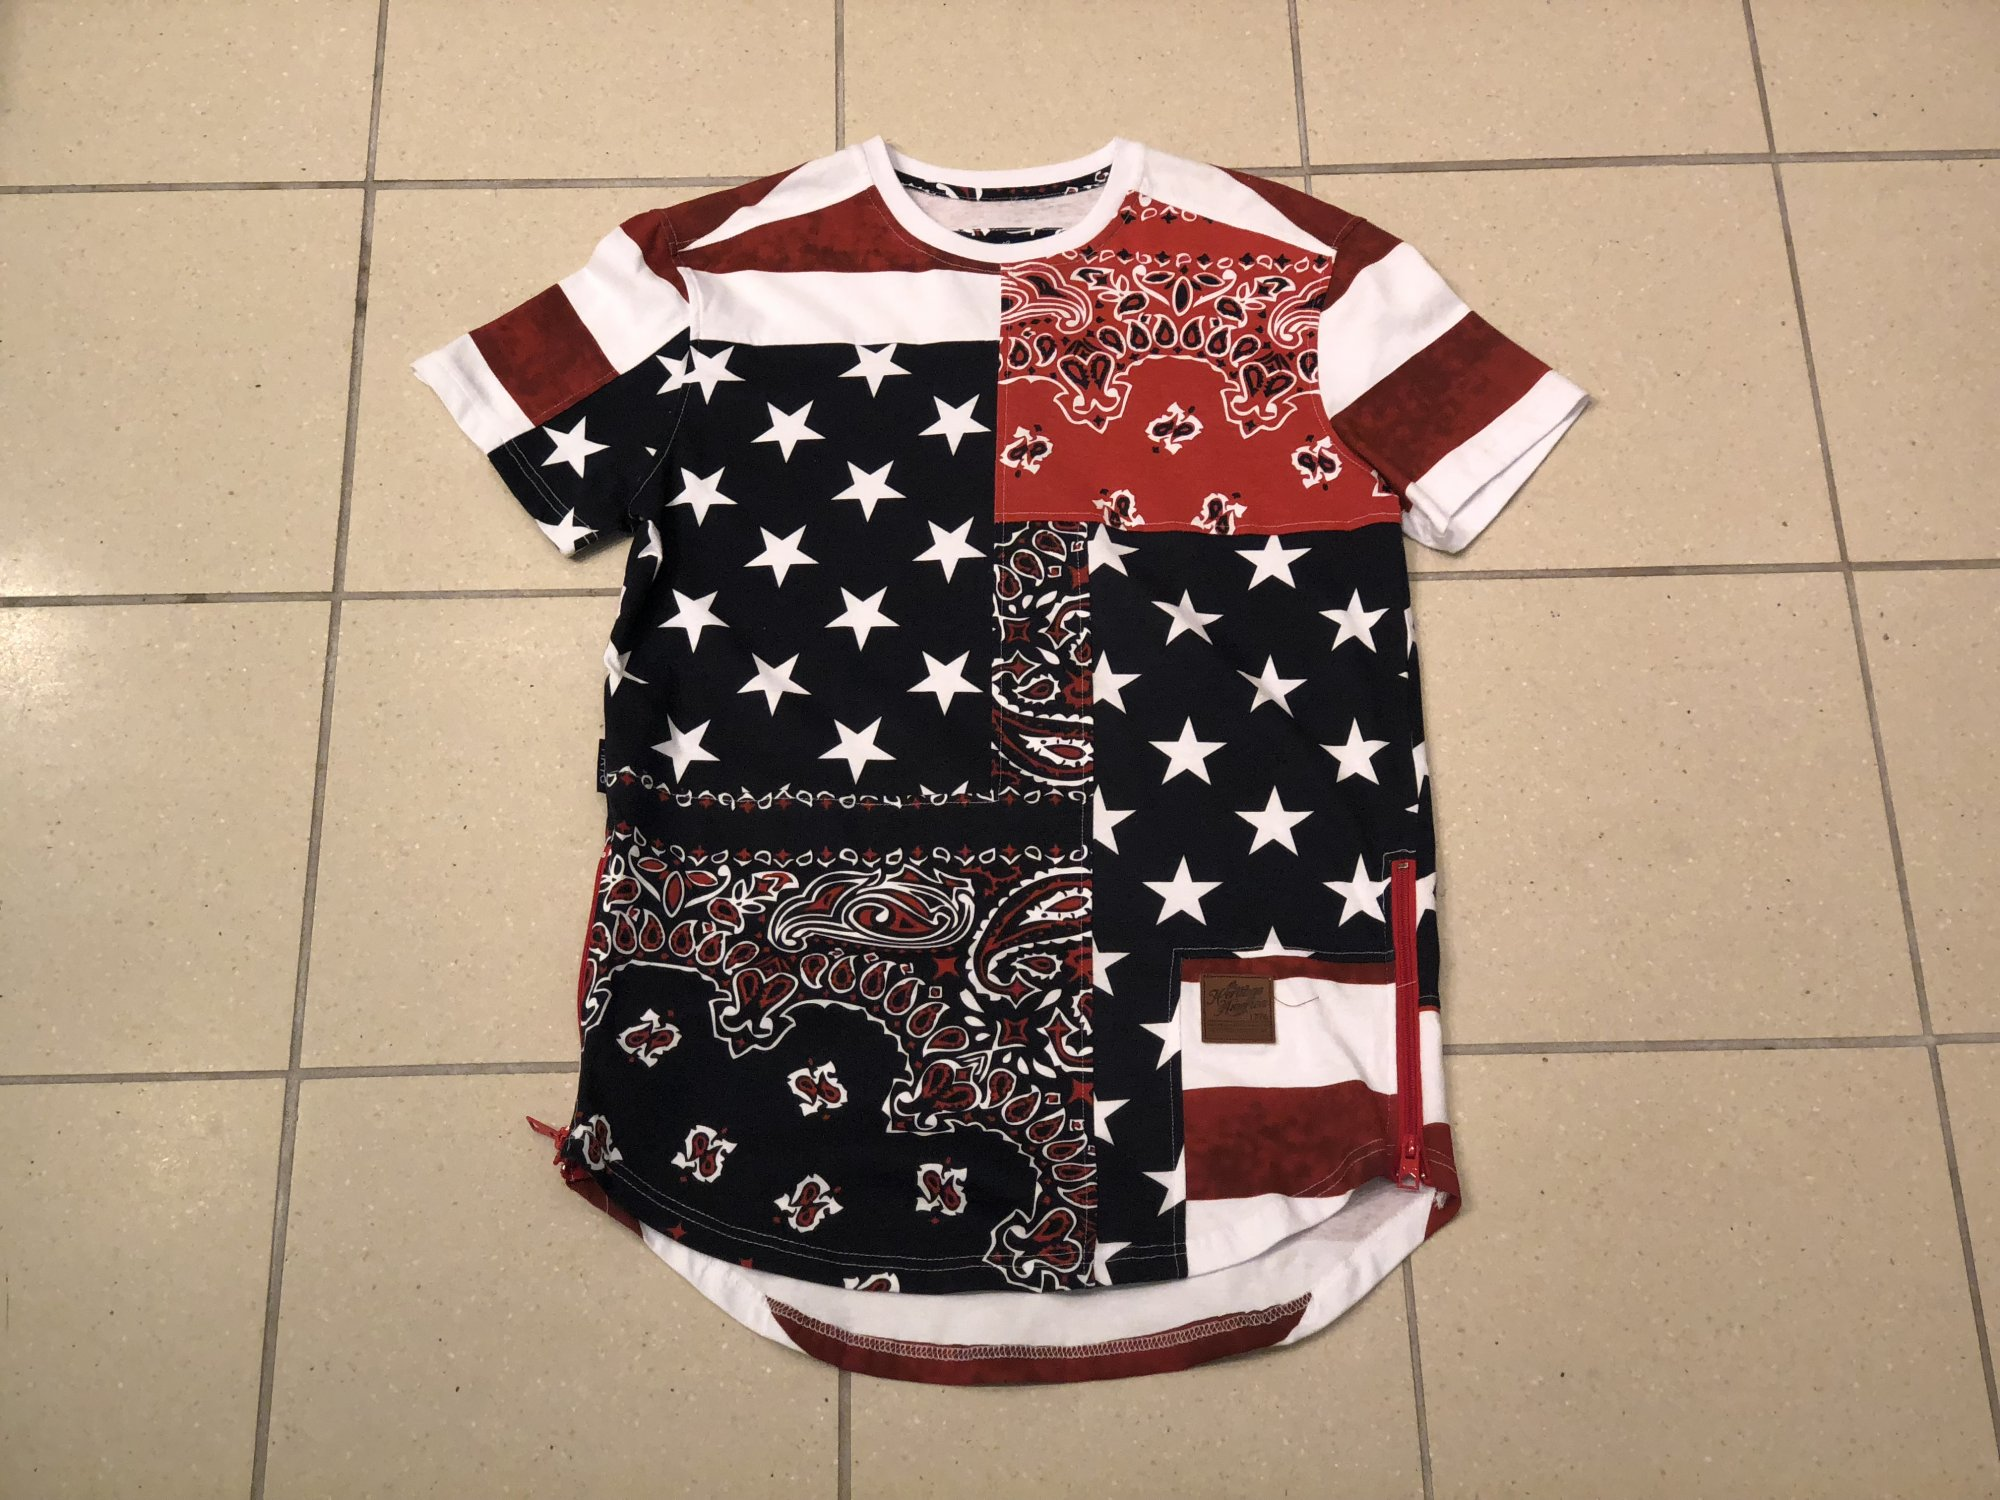 HERITAGE BY AMERICA SHIRT